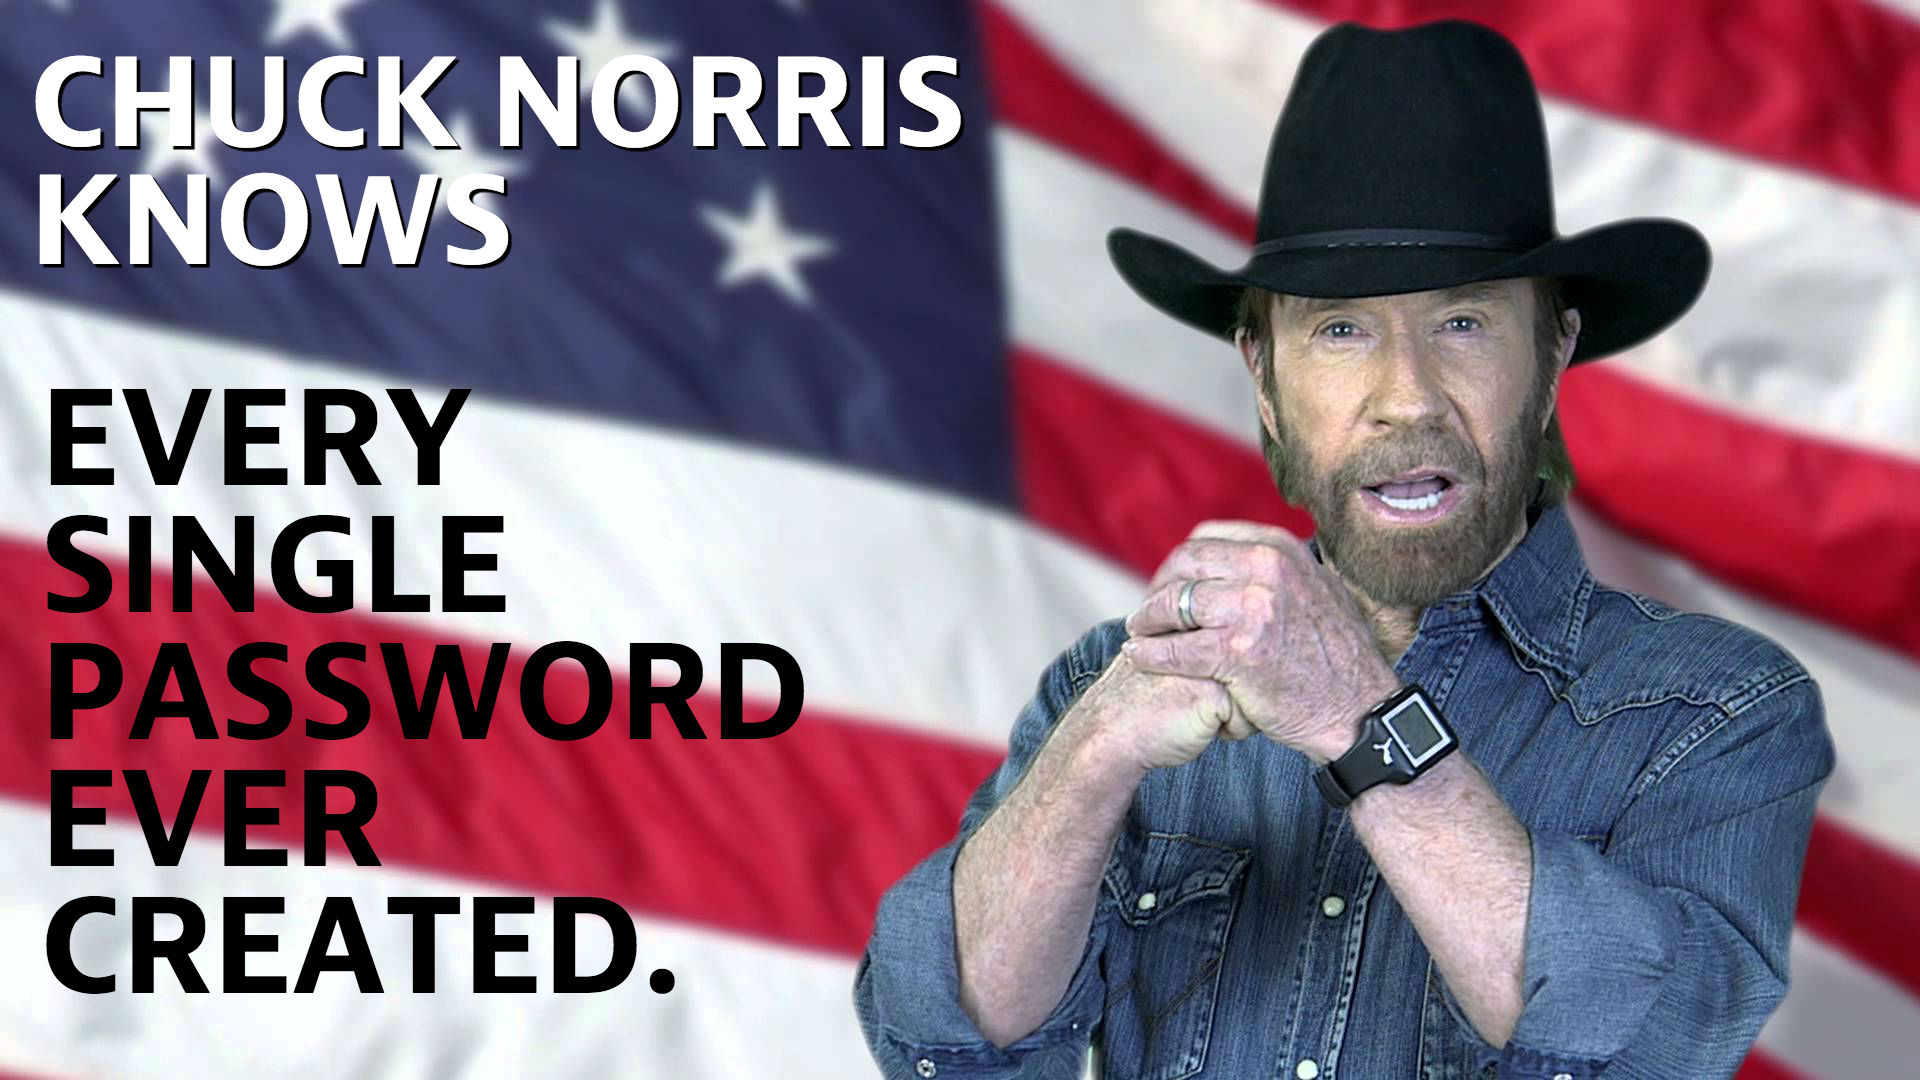 Chuck Norris knows every single password ever created